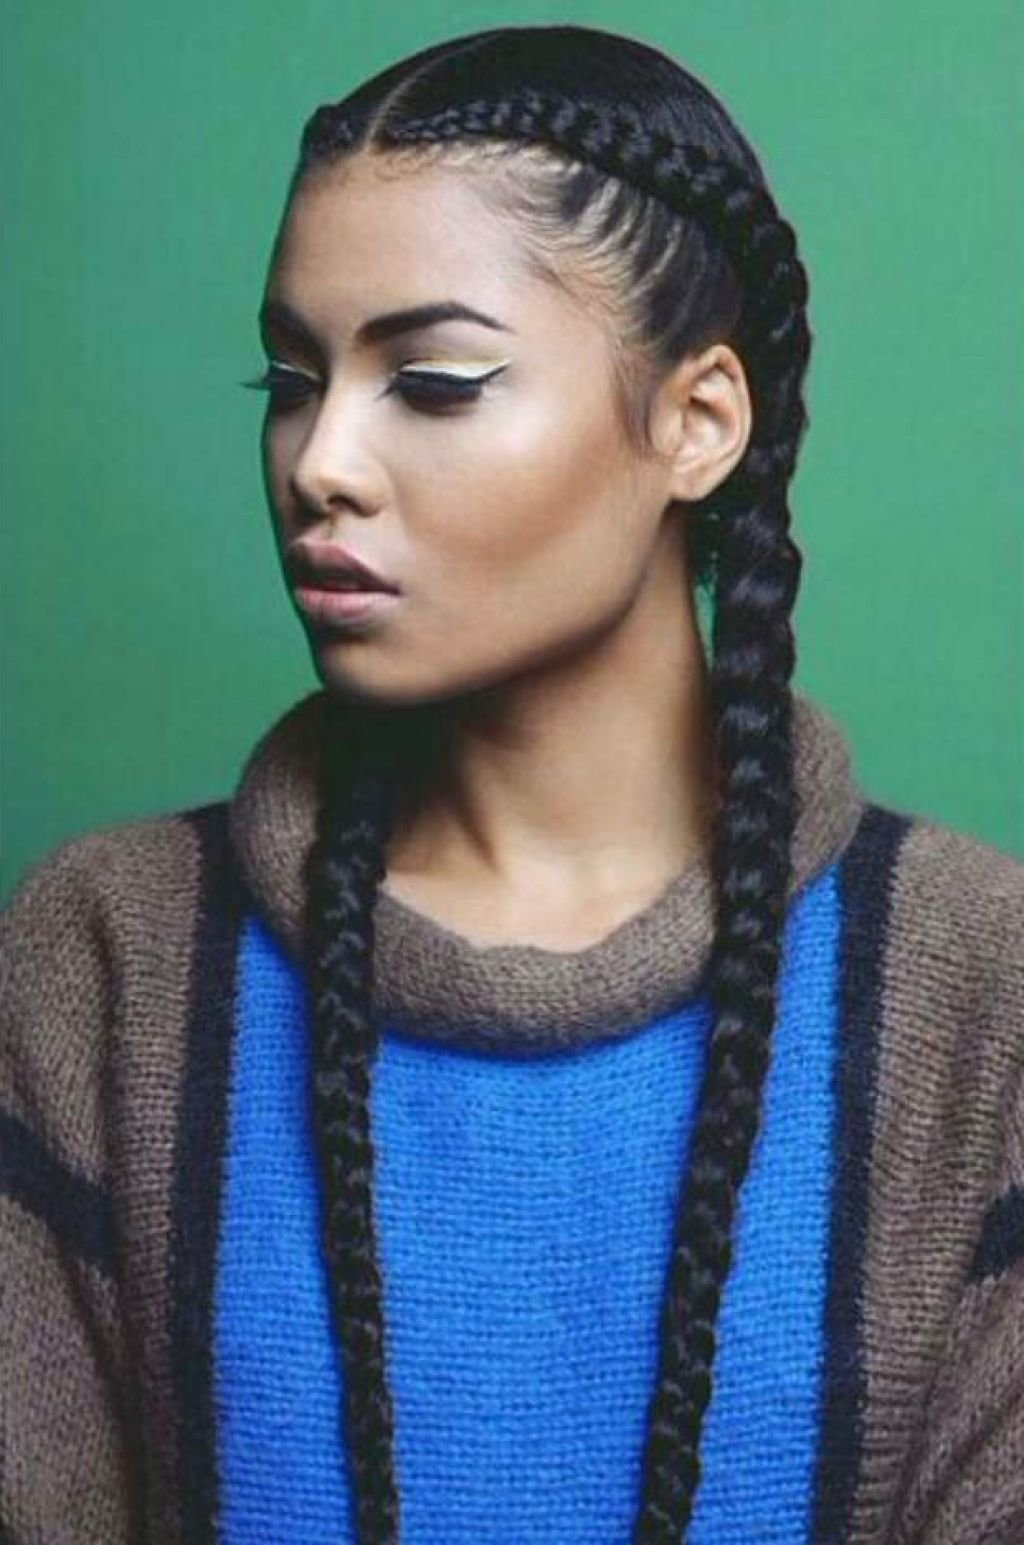 The Best Two Braid Hairstyles – Cute Hairstyles For Girls With Pictures